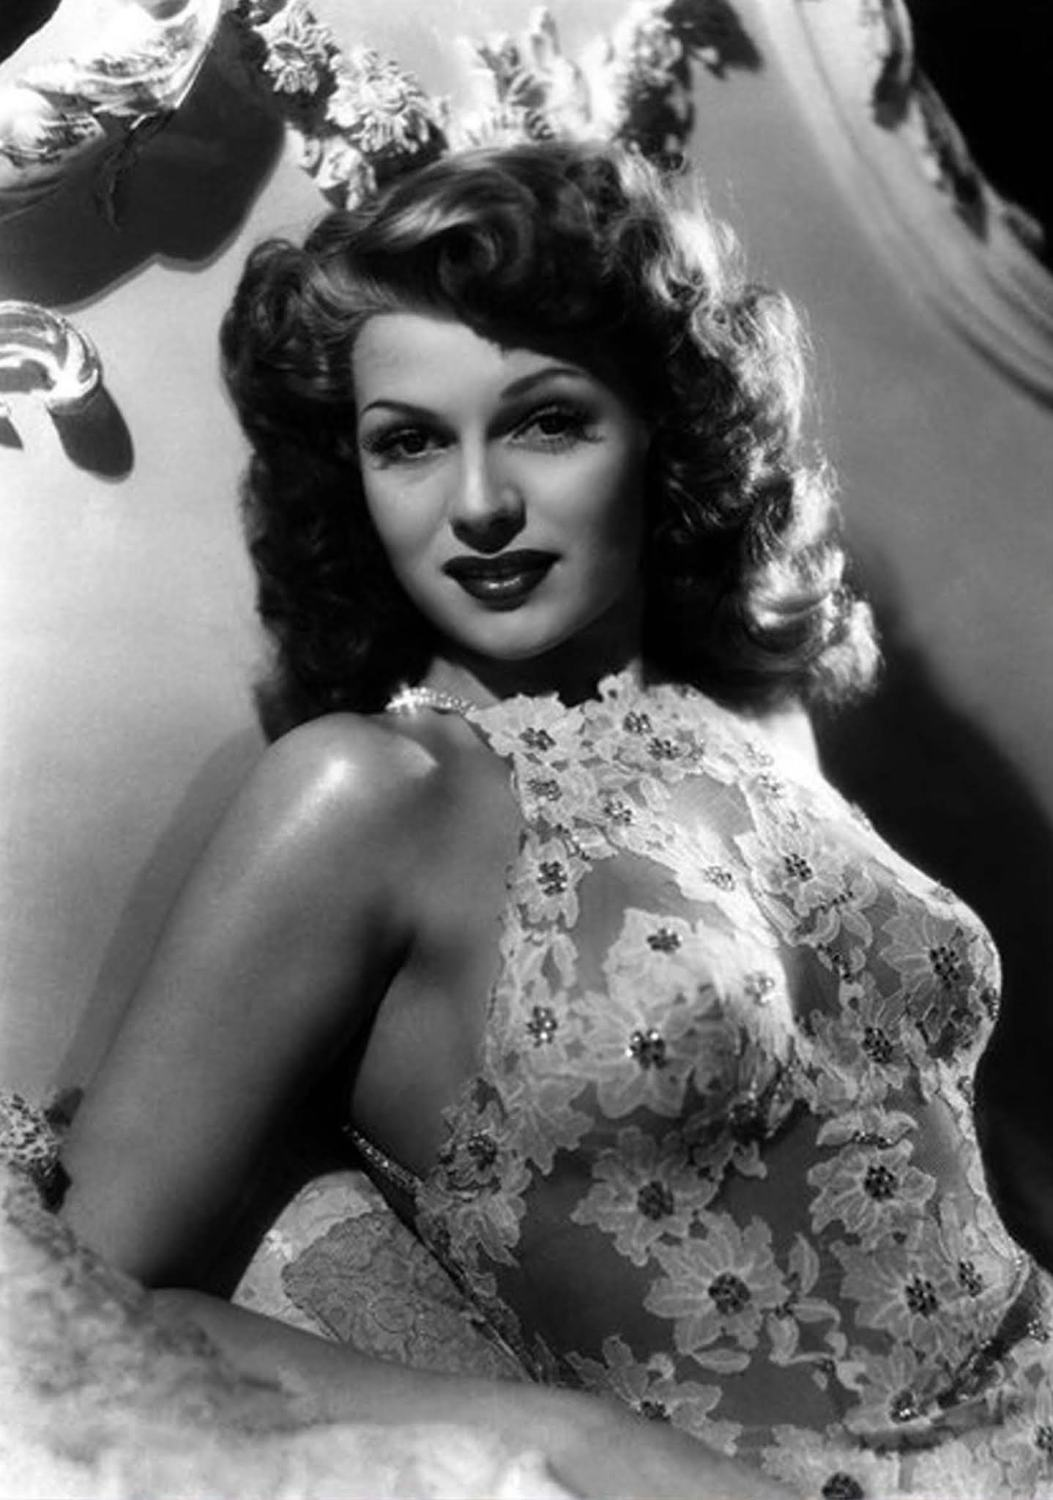 9 Legendary Pin-up Girls Who Became Household Names